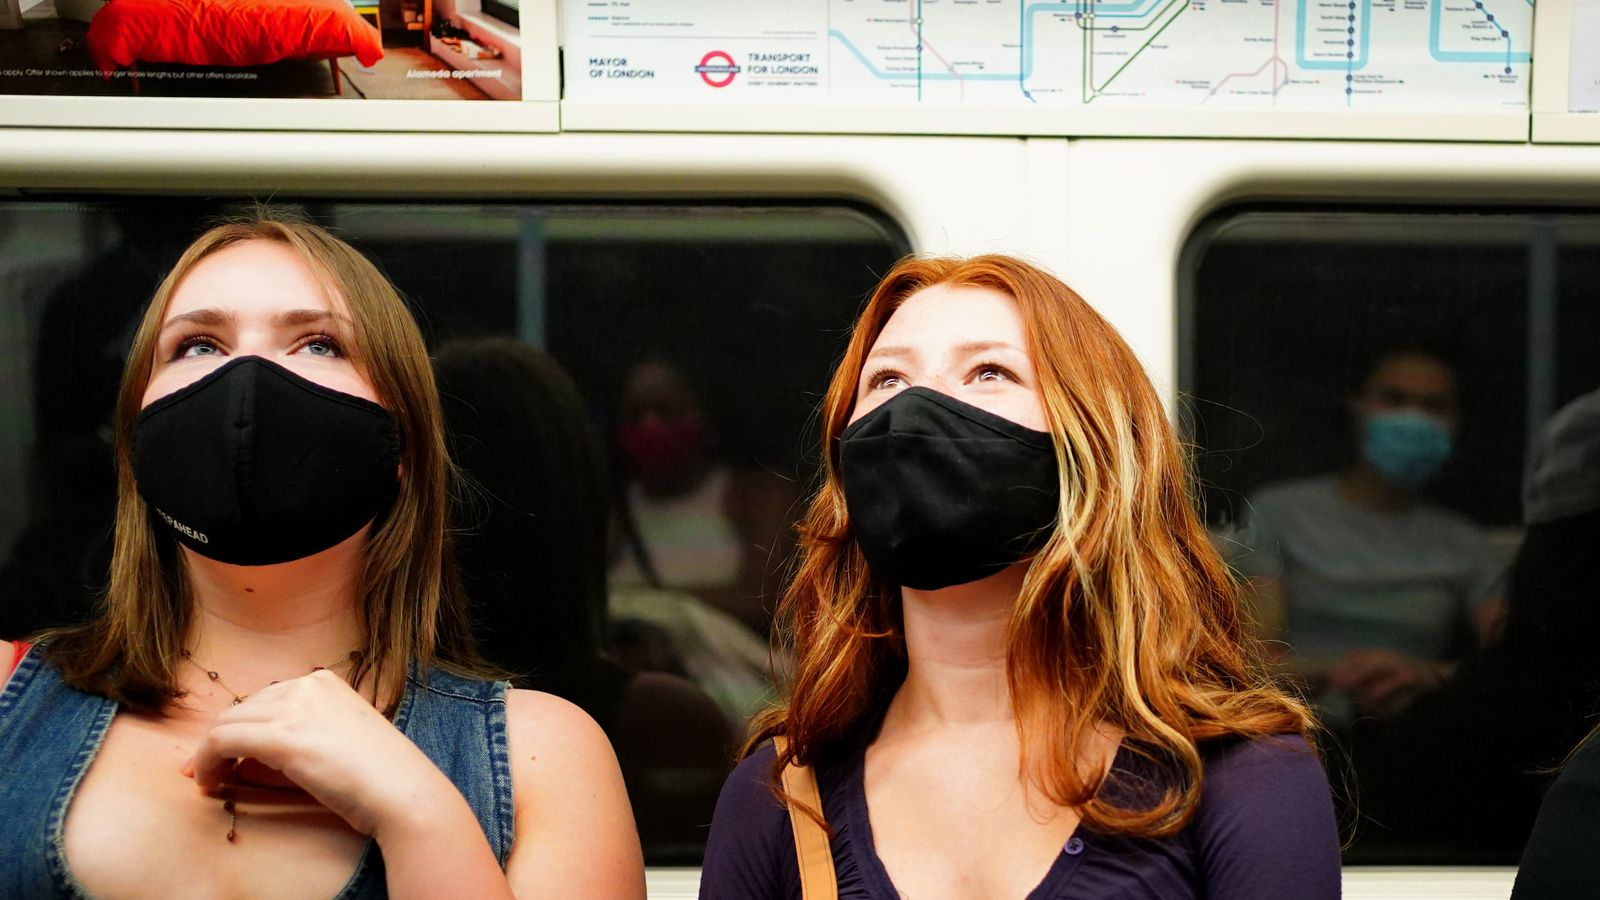 Guidance will state people are still 'expected' to wear face masks indoors after lockdown easing, minister says